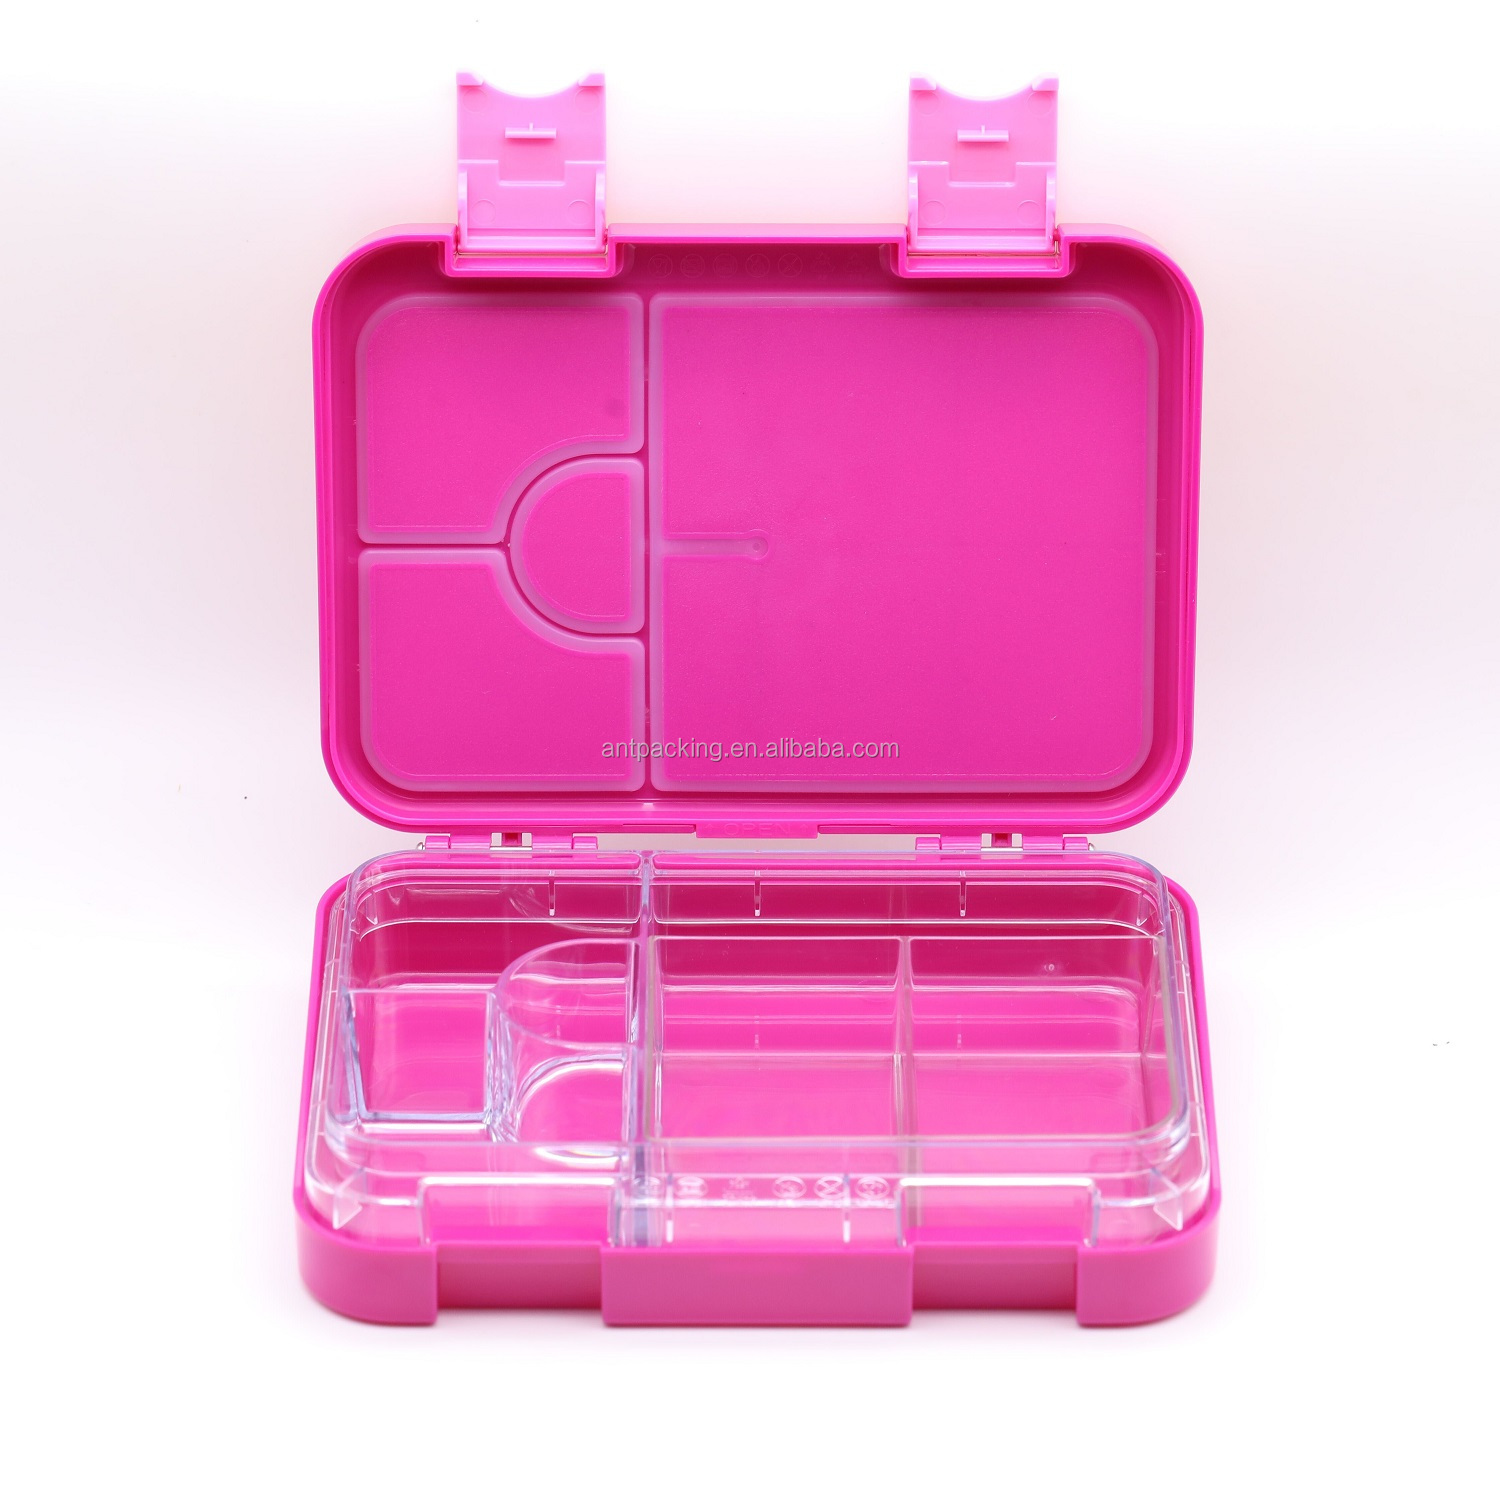 Nontoxic and  Easy to Clean with removable 6 compartment food insert for kids lunch box